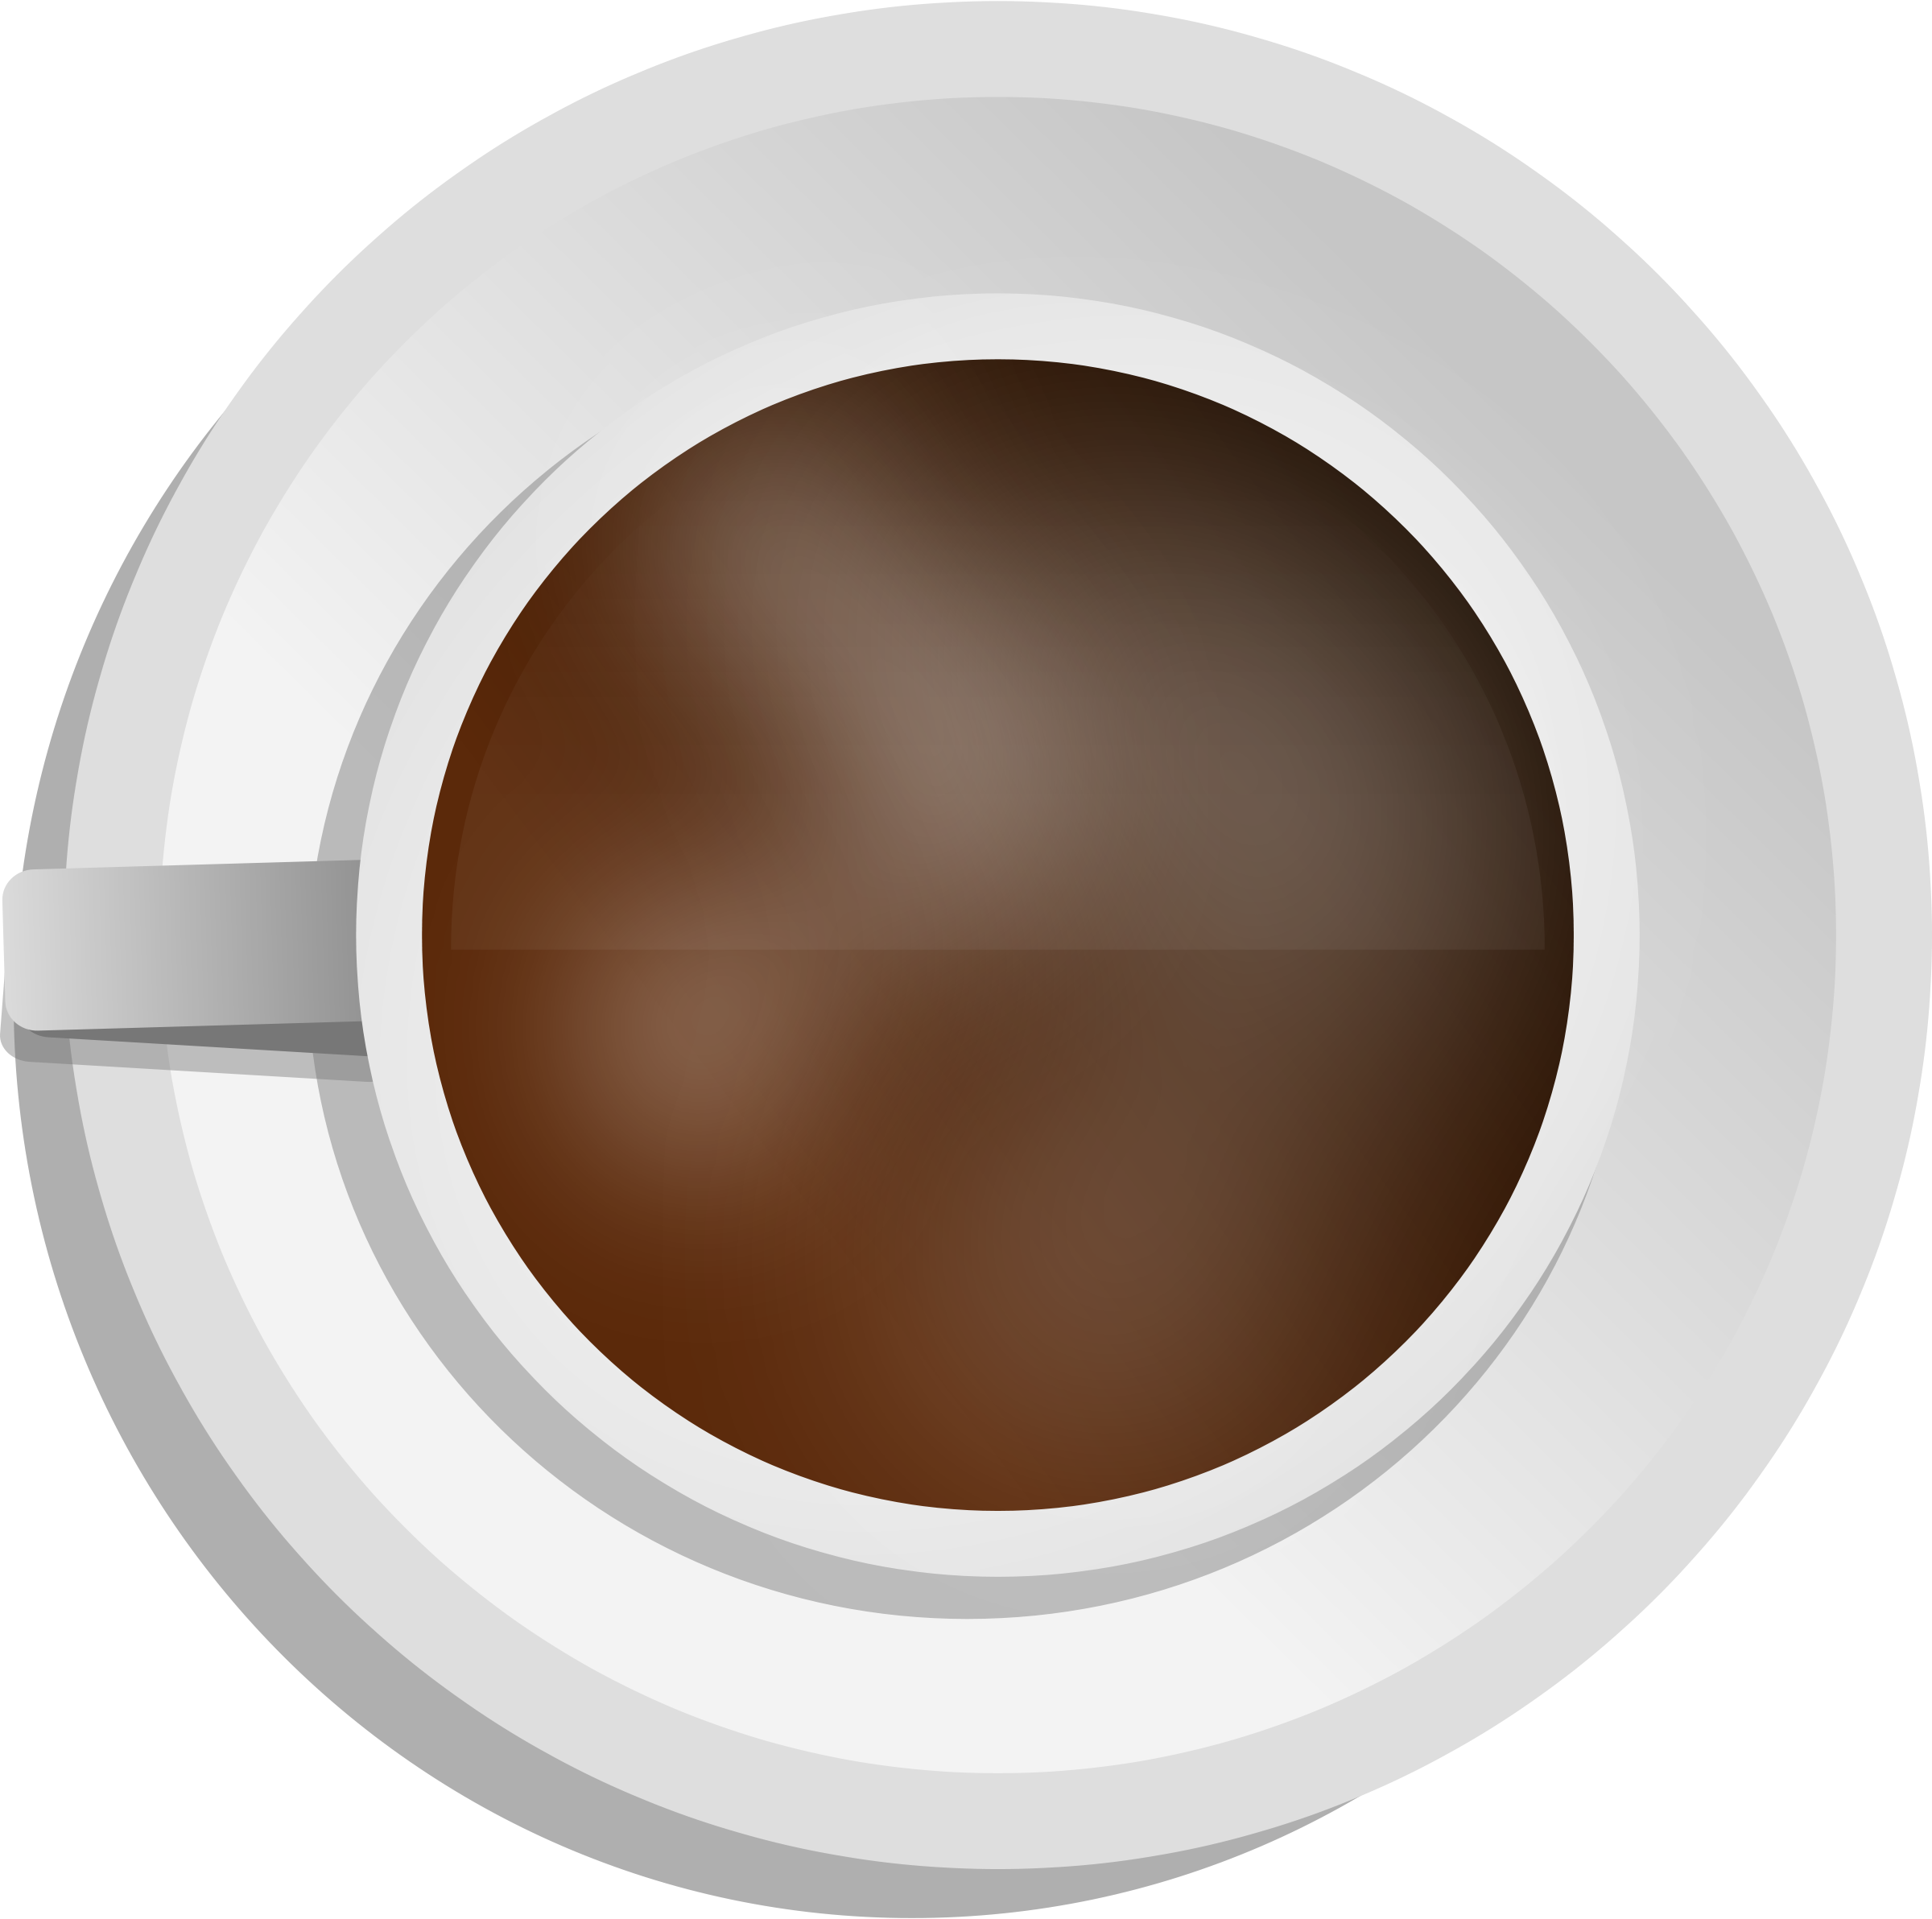 Png images free download. Cup clipart brown coffee mug